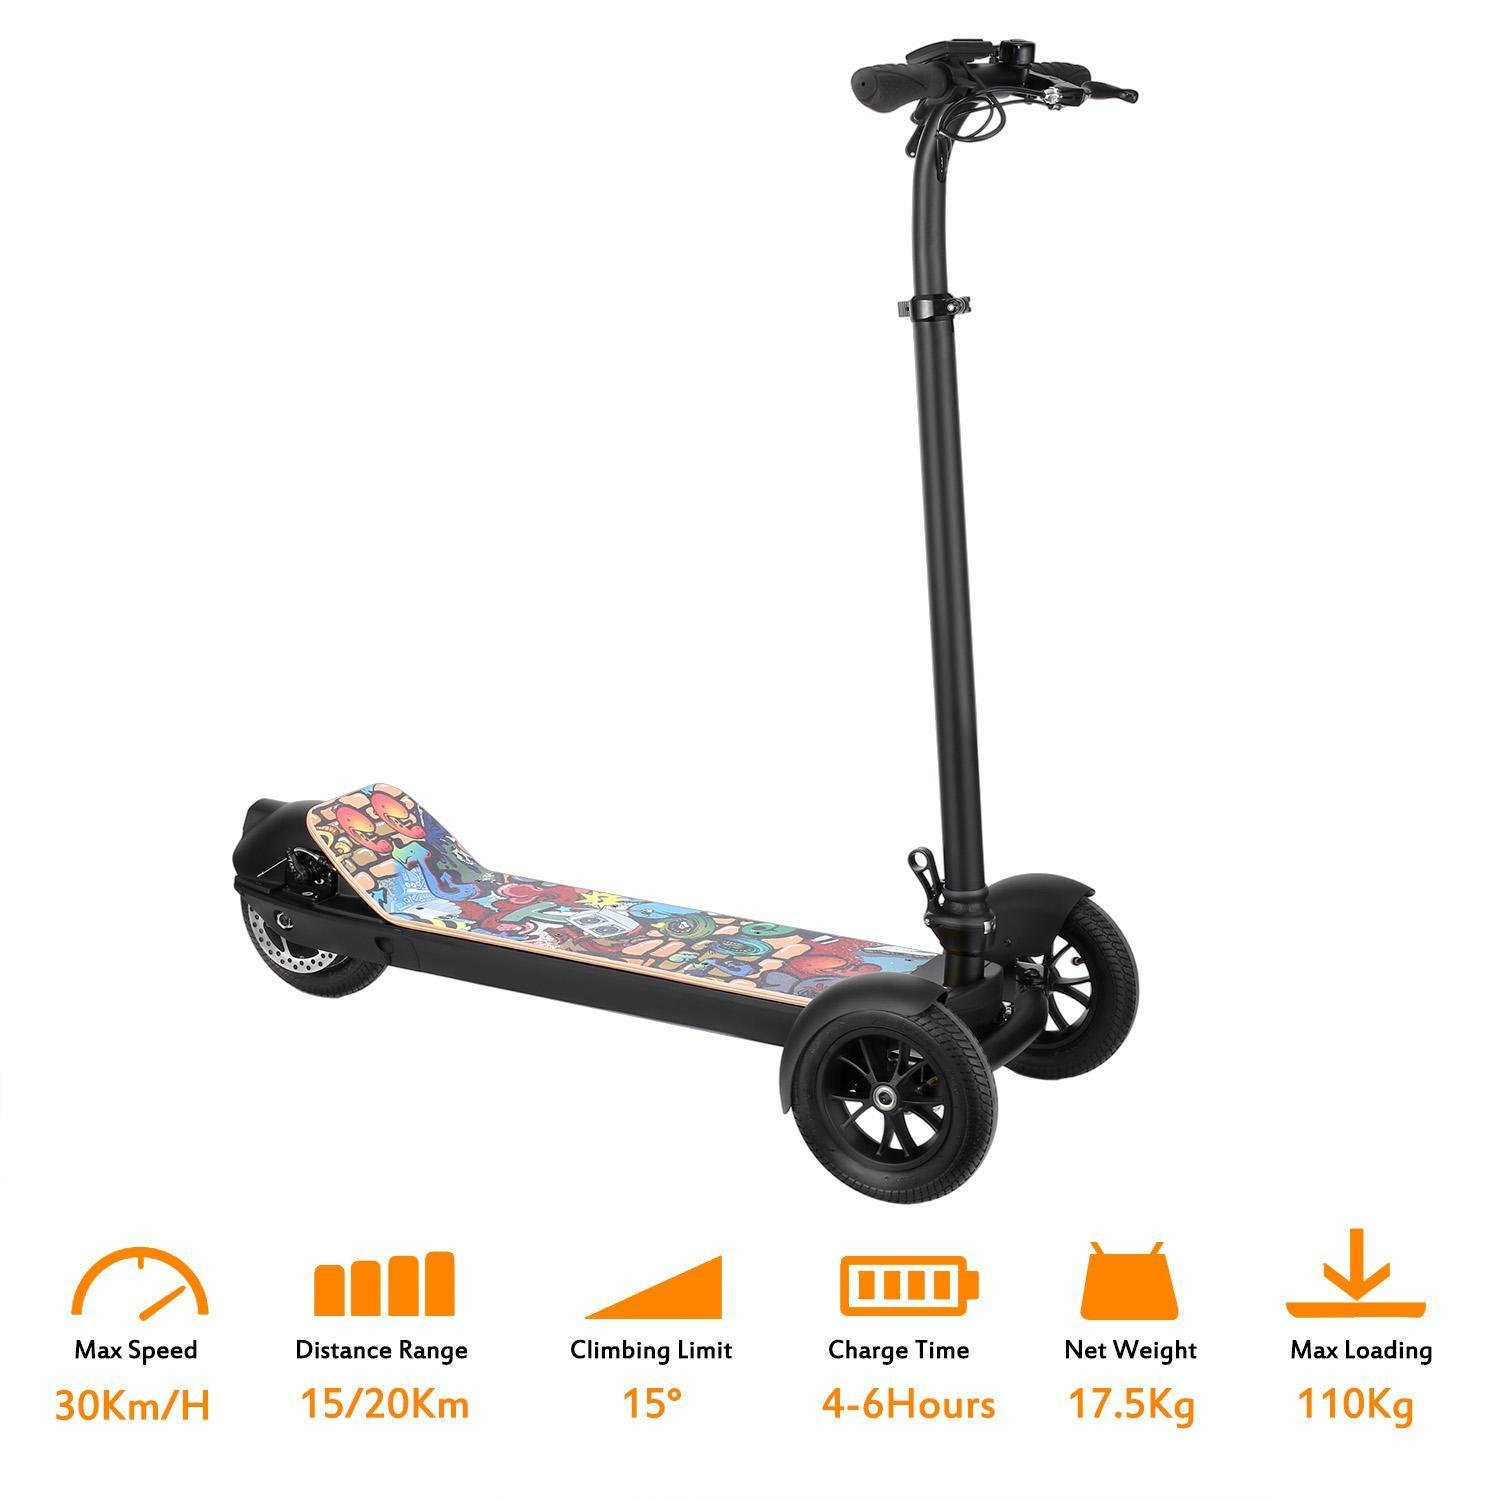 Oguine Folding Electric Scooter Folding Mobility Scooter ...